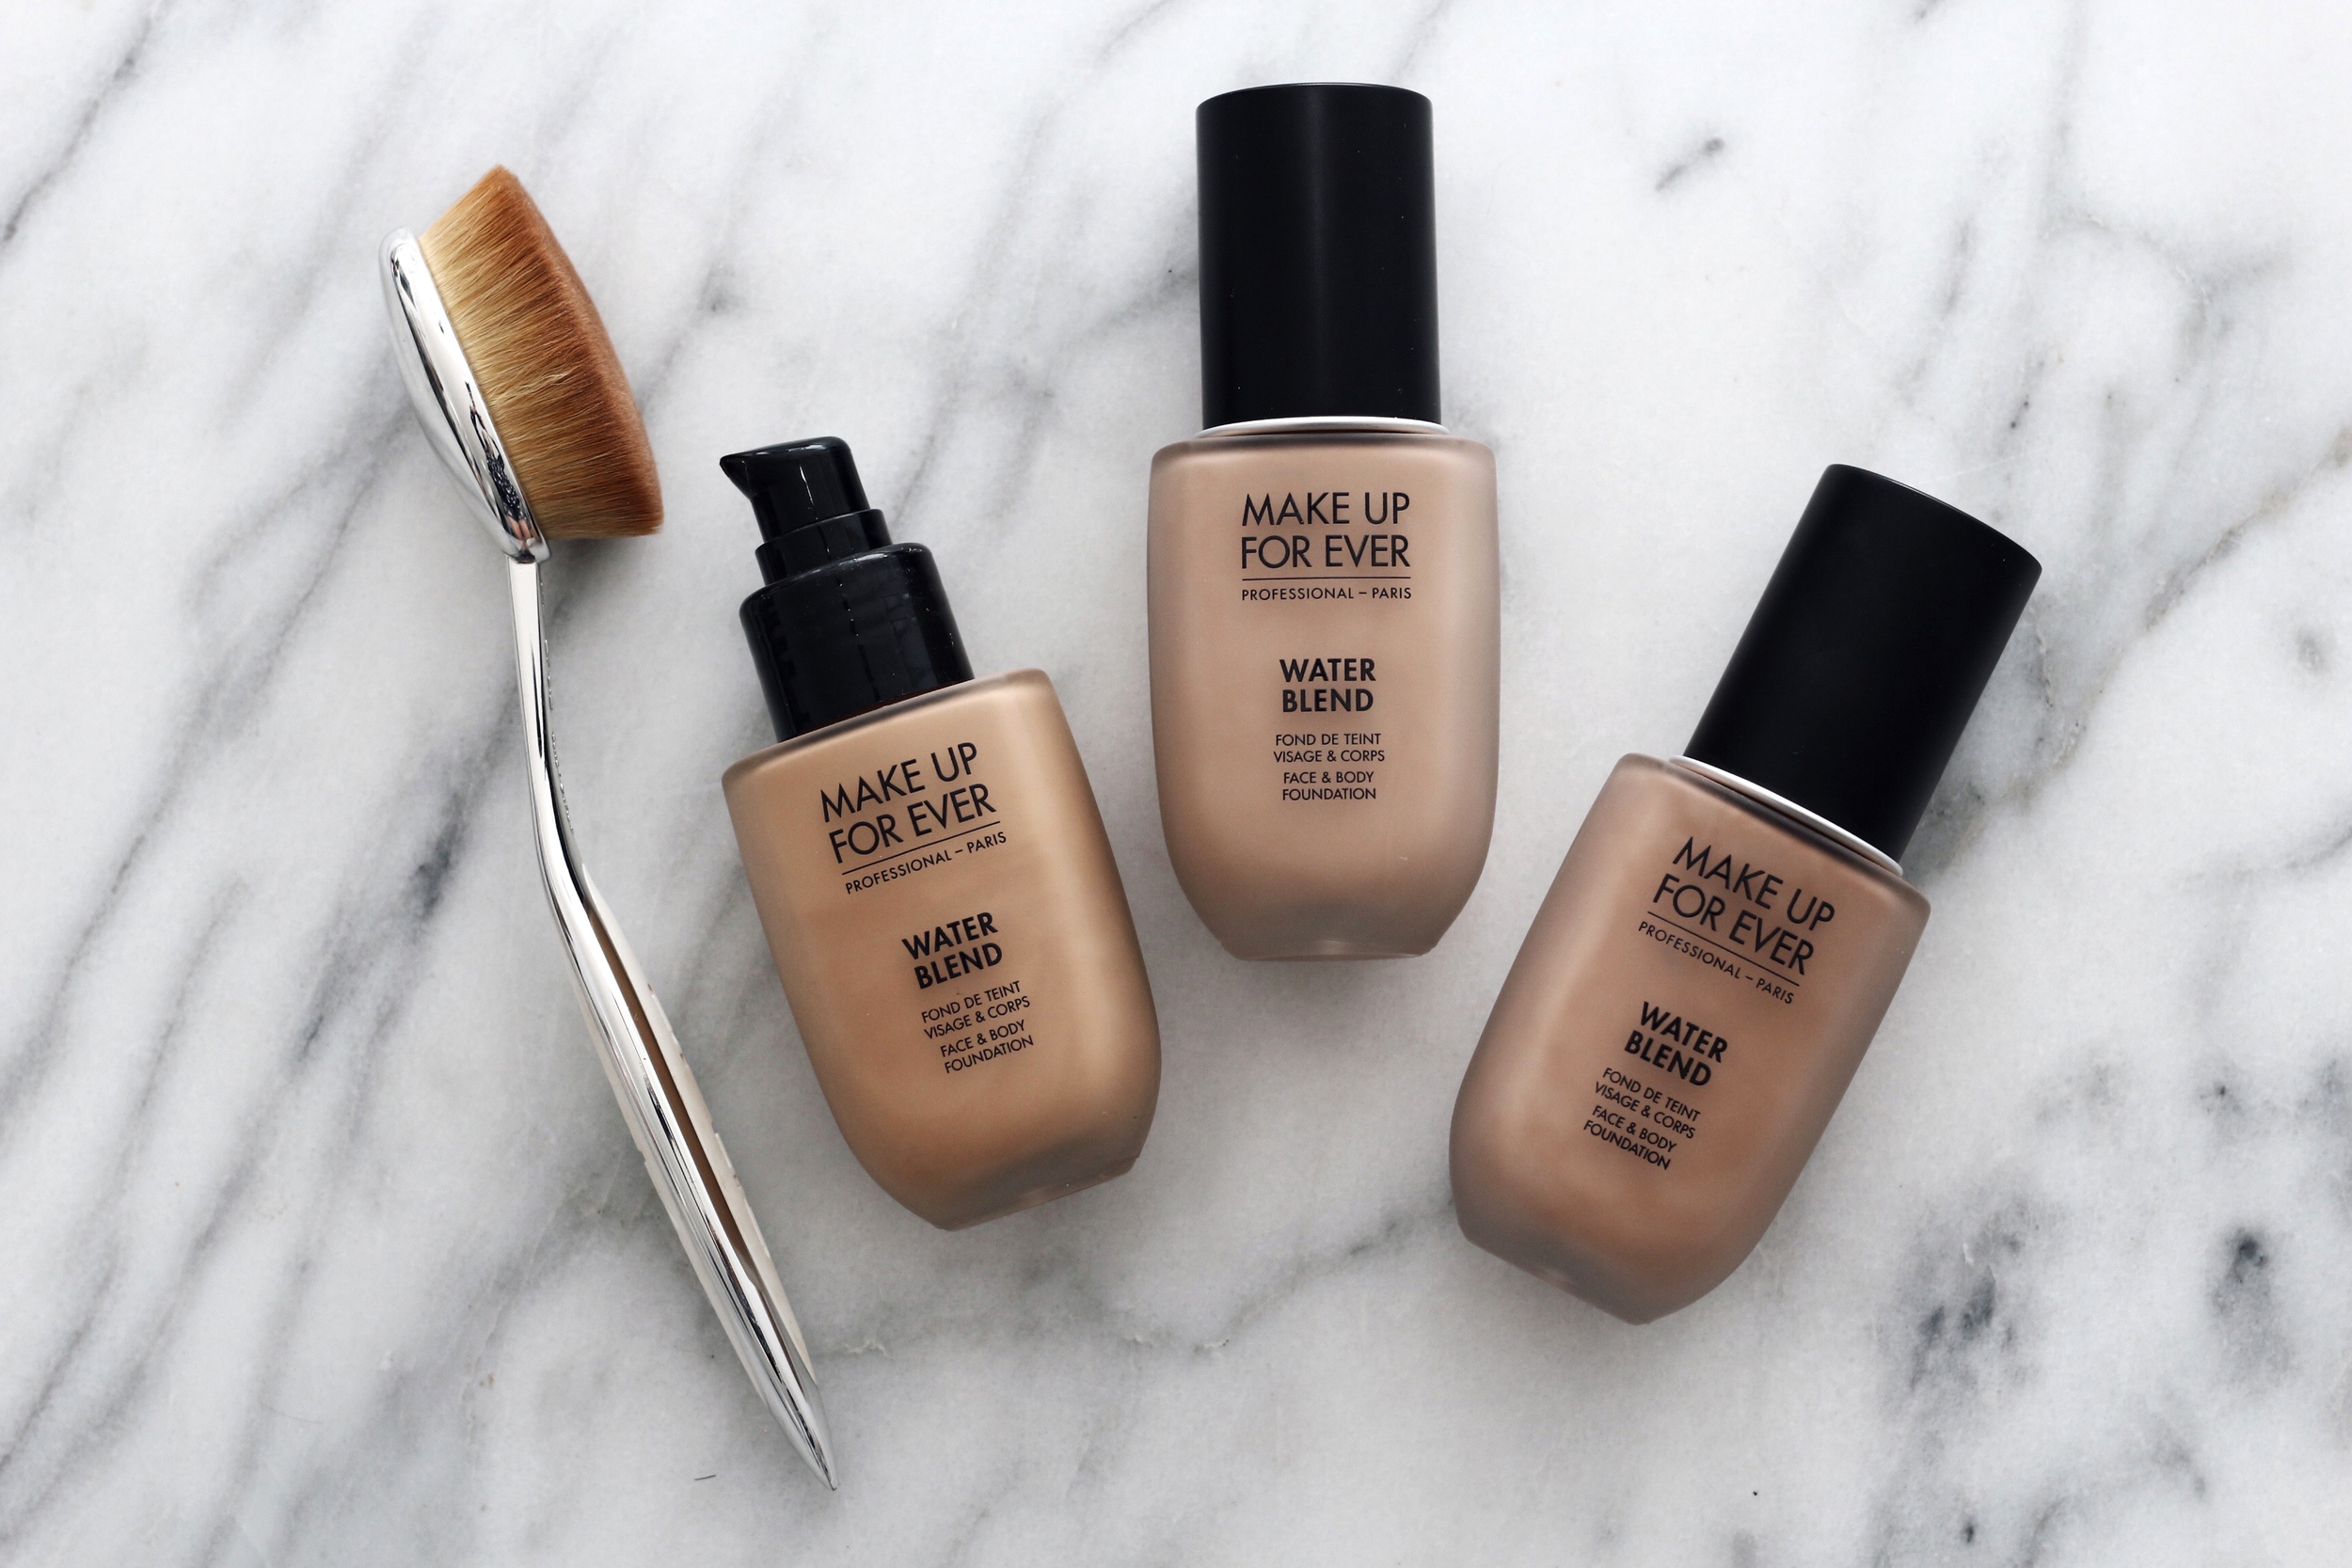 THE PERFECT NO-MAKEUP MAKEUP BY MAKE UP FOR EVER WATER BLEND FOUNDATION - WOAHSTYLE.COM_9266.JPG